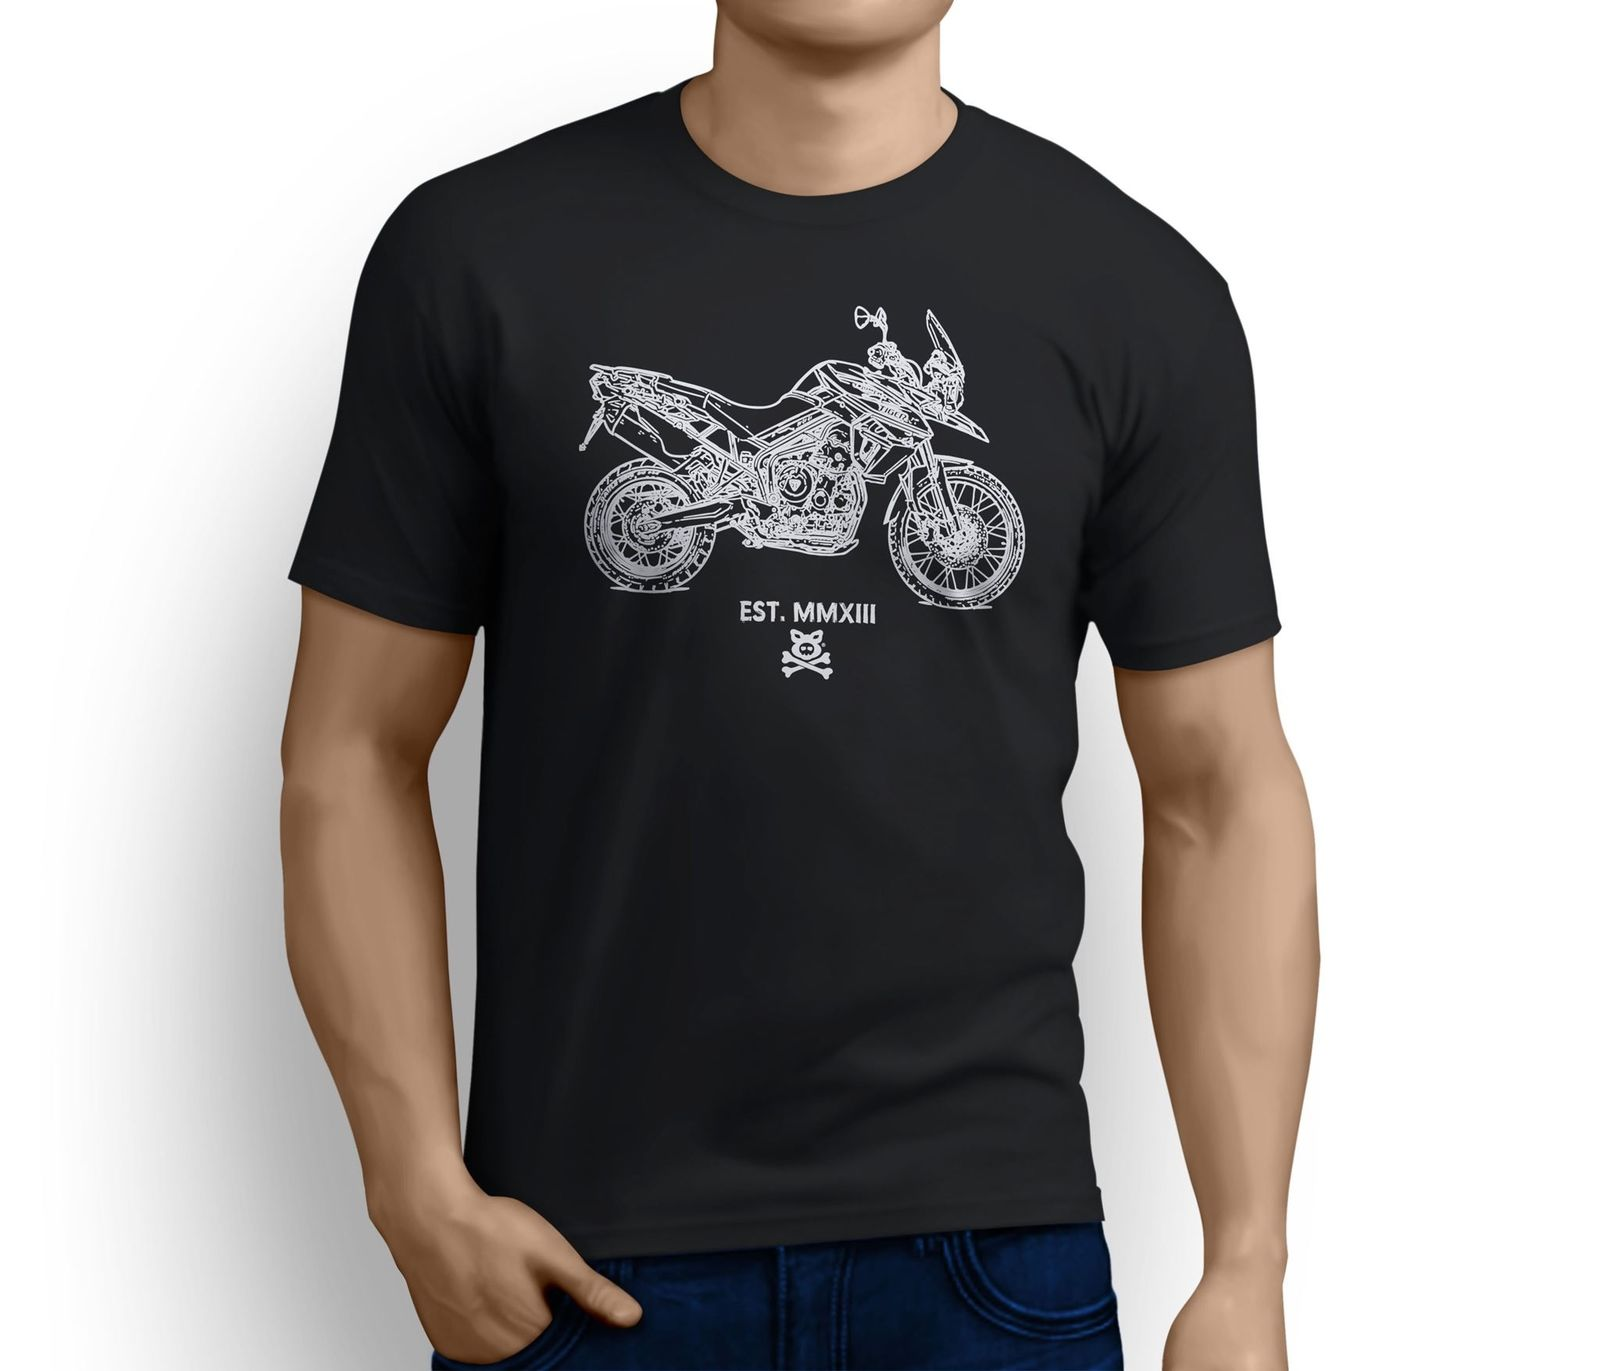 2018 Hot Sale American Motorbike Tiger 800 XC inspired Motorcycle Art T-shirts Tee shirt